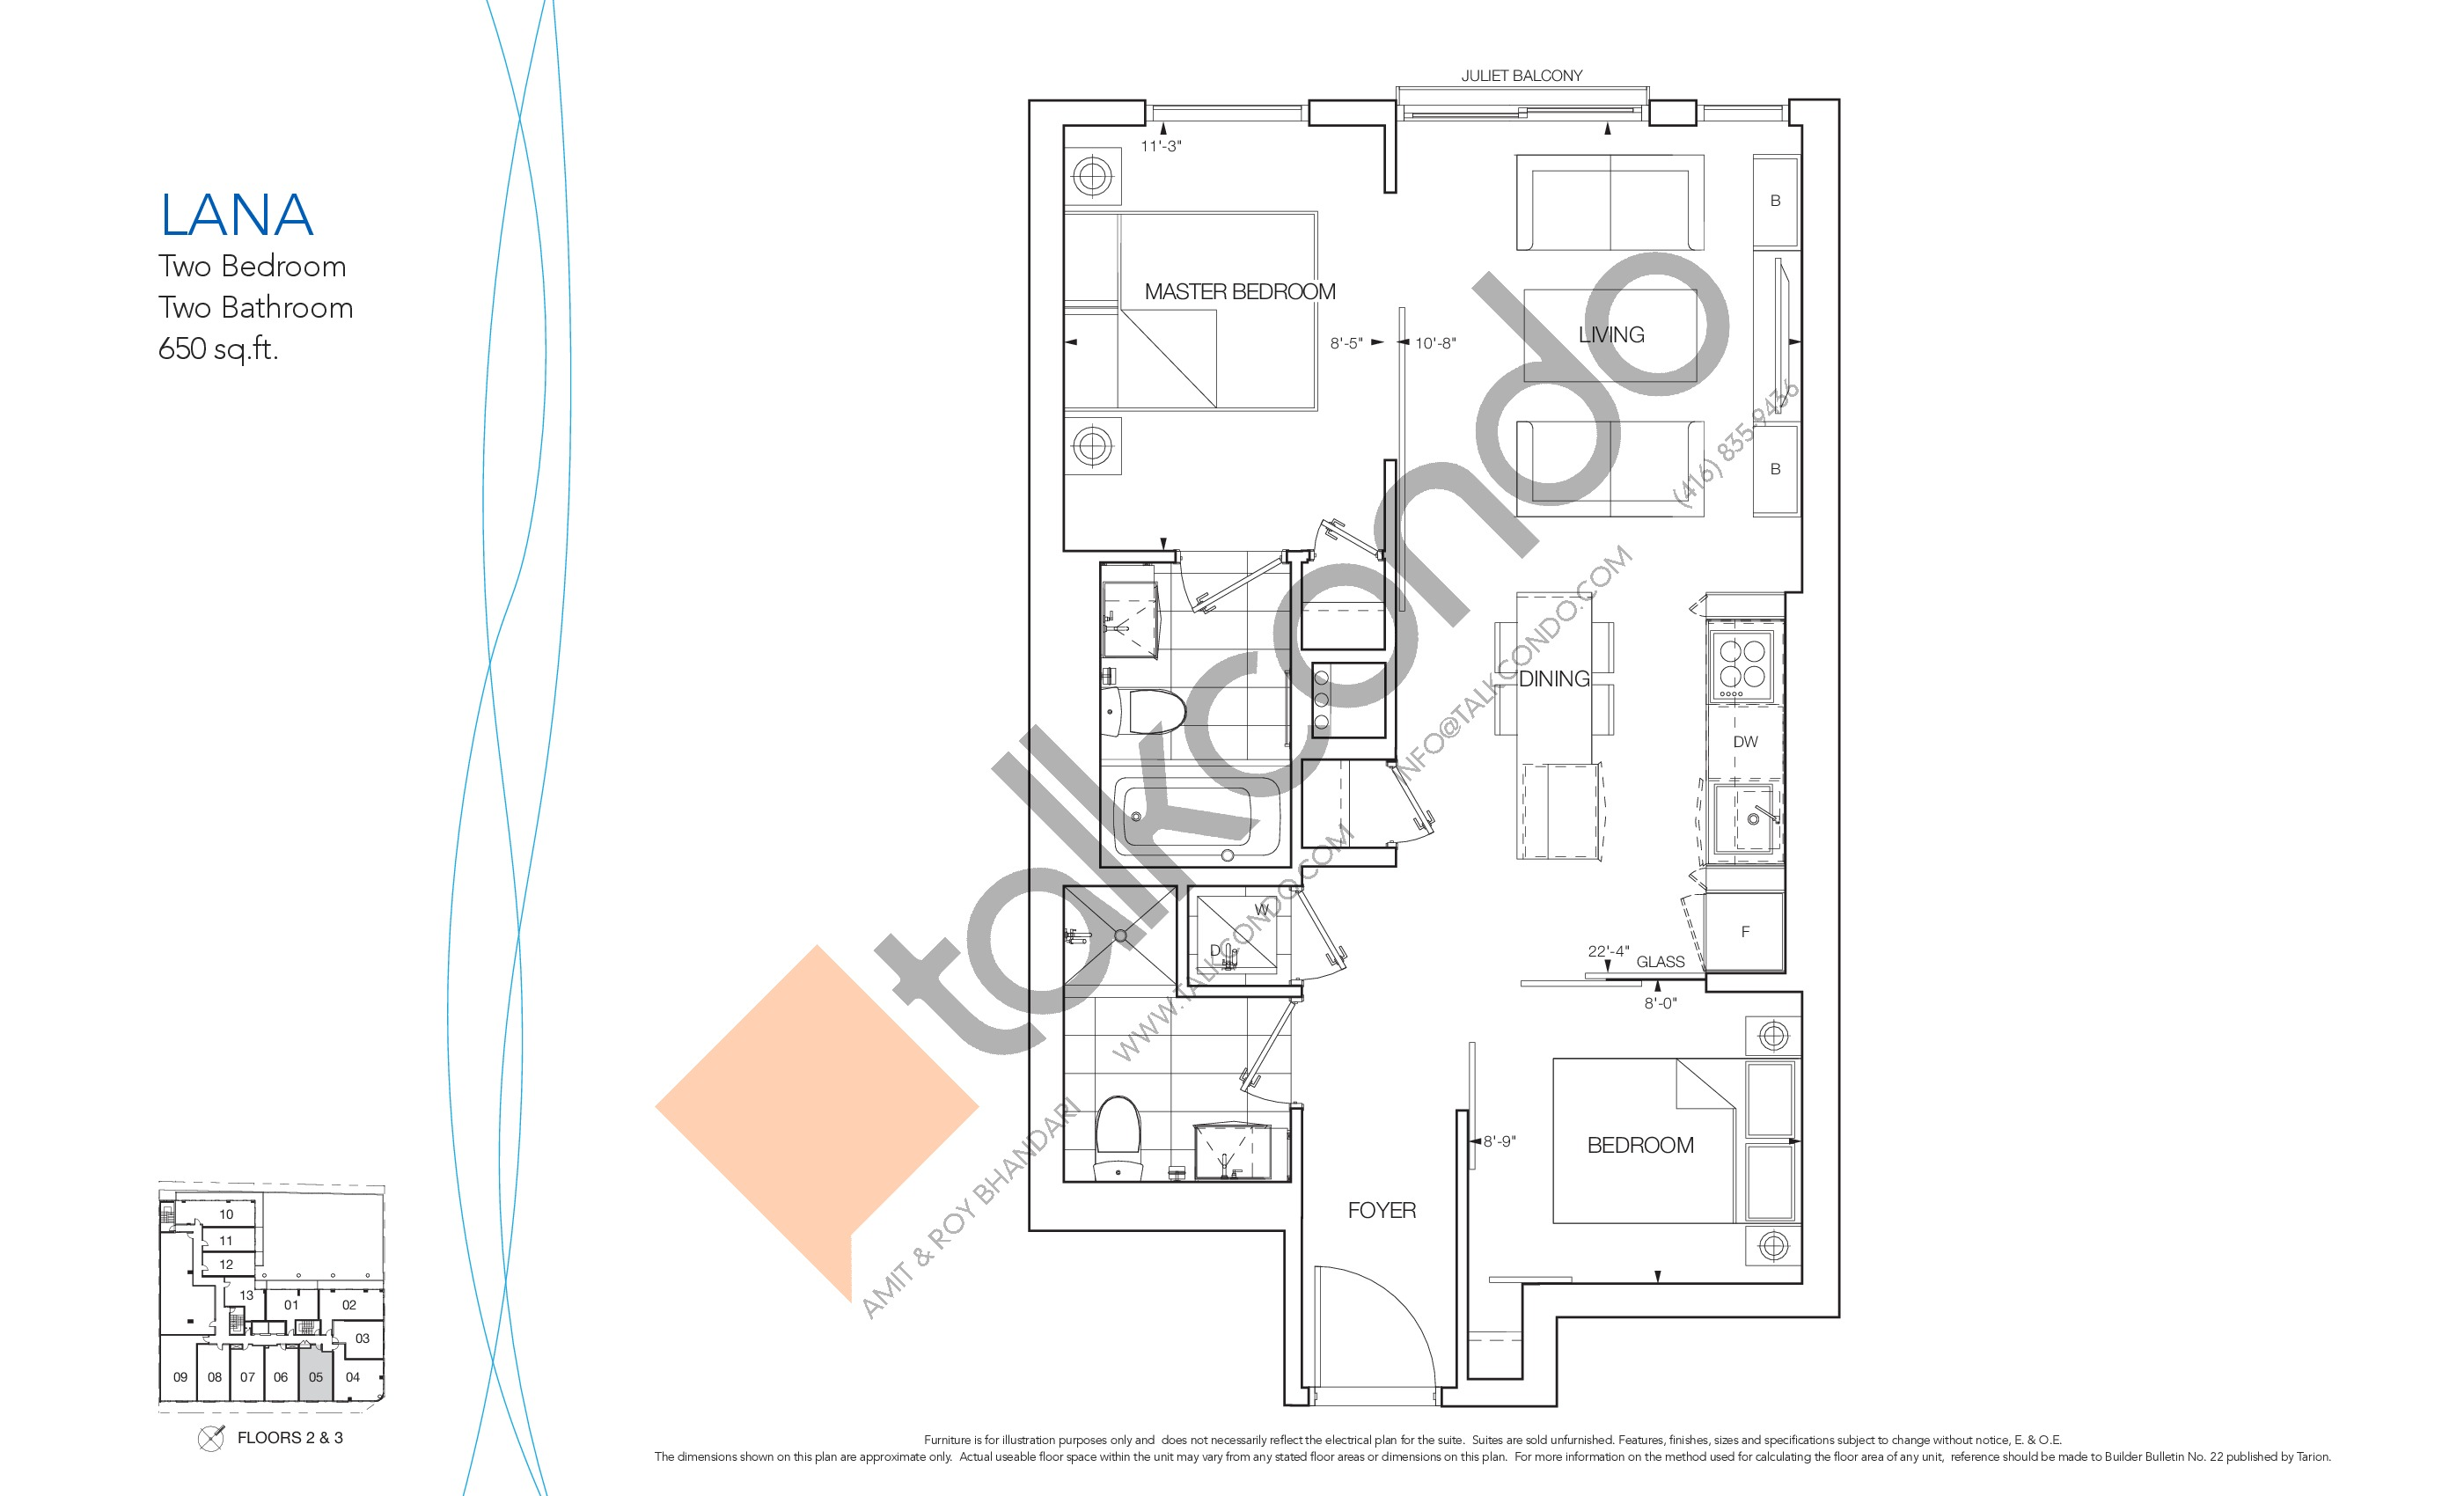 Lana Floor Plan at Nautique Lakefront Residences - 650 sq.ft